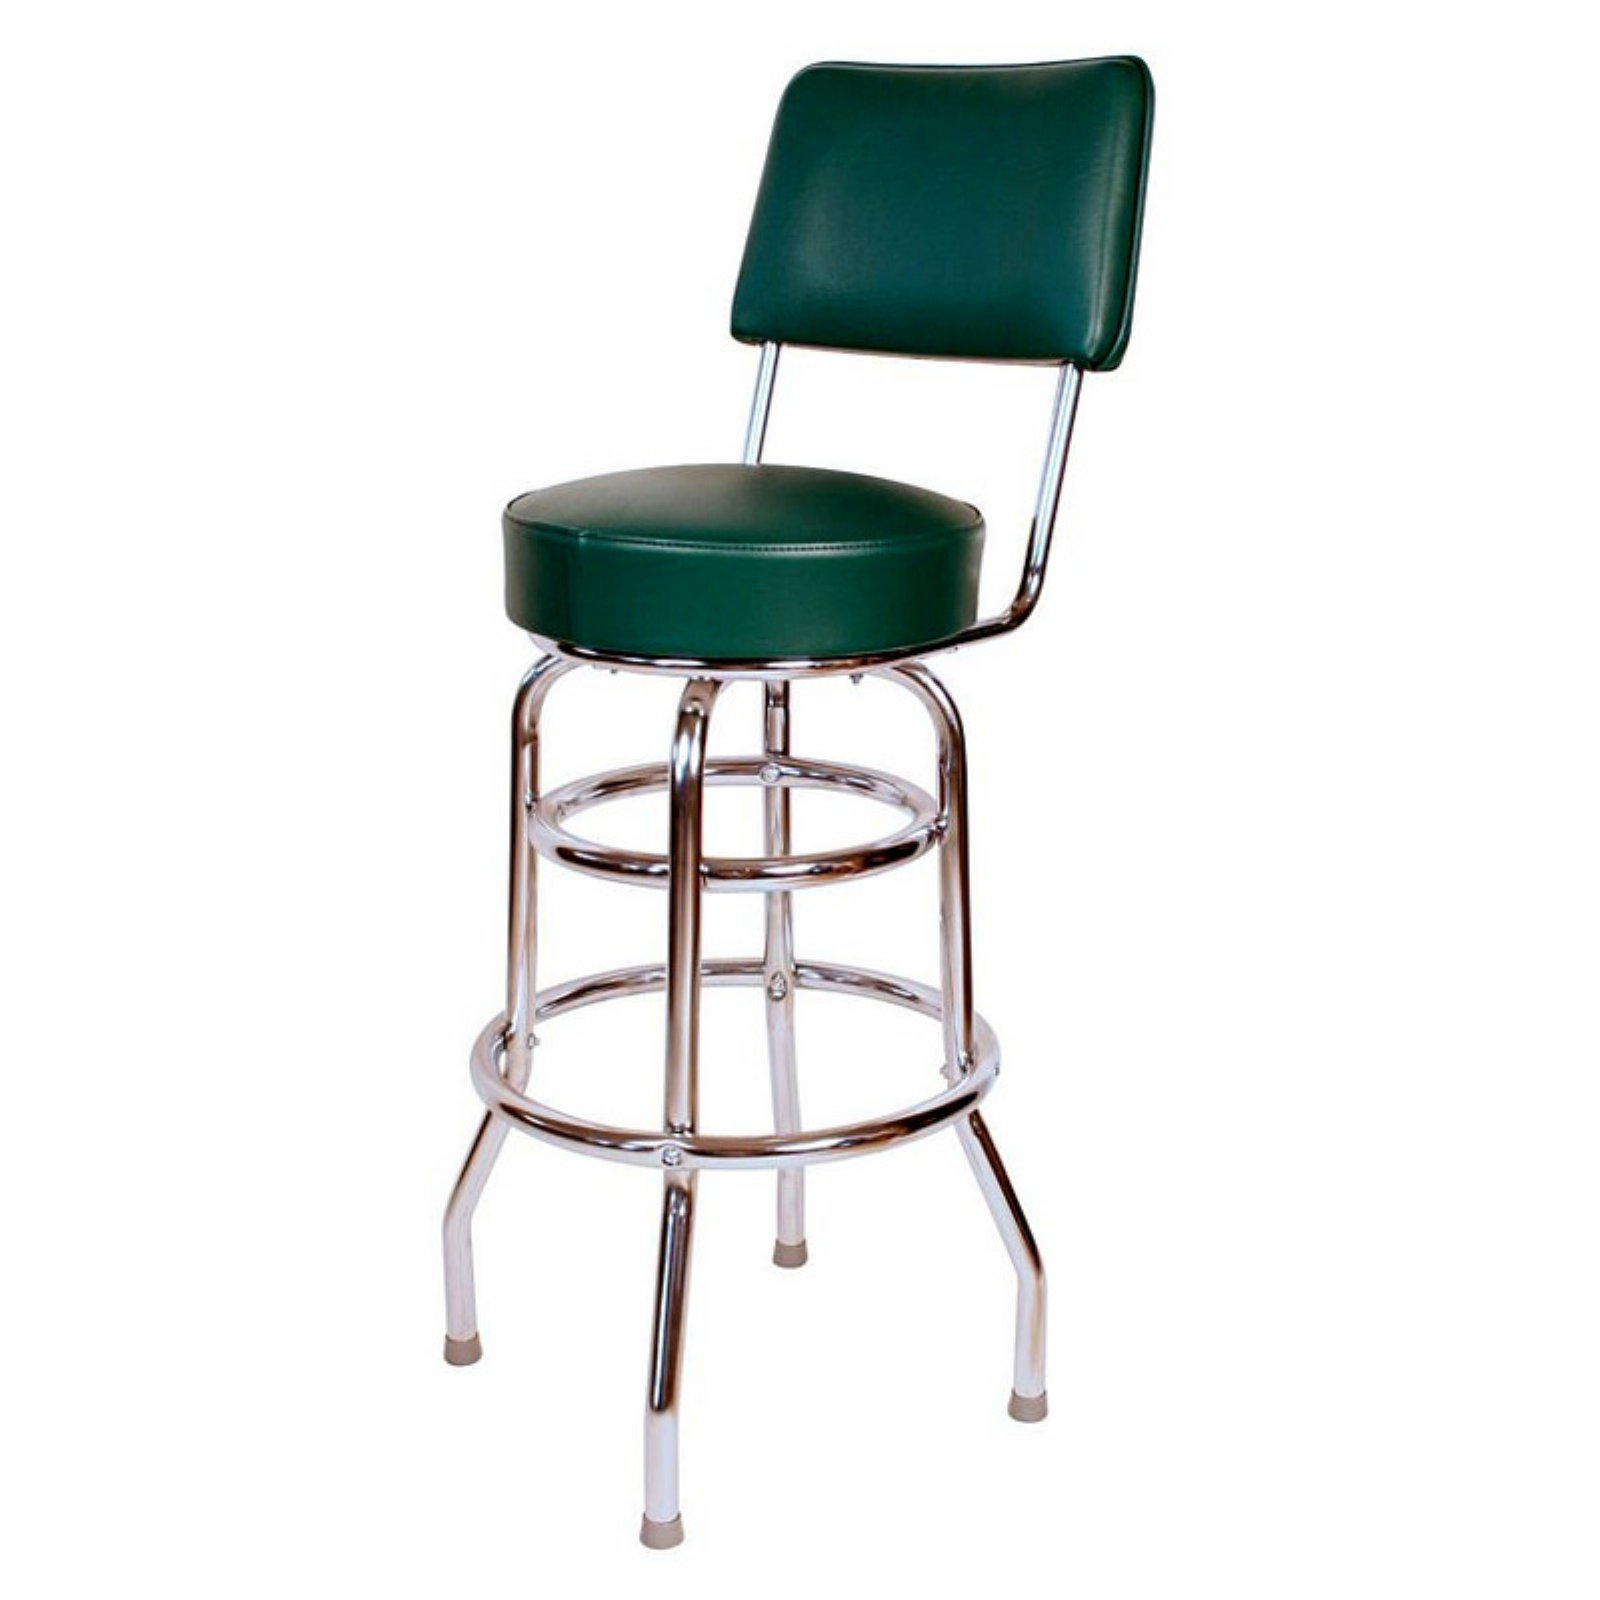 Richardson Seating Floridian 30 in. Double Ring Swivel Bar Stool